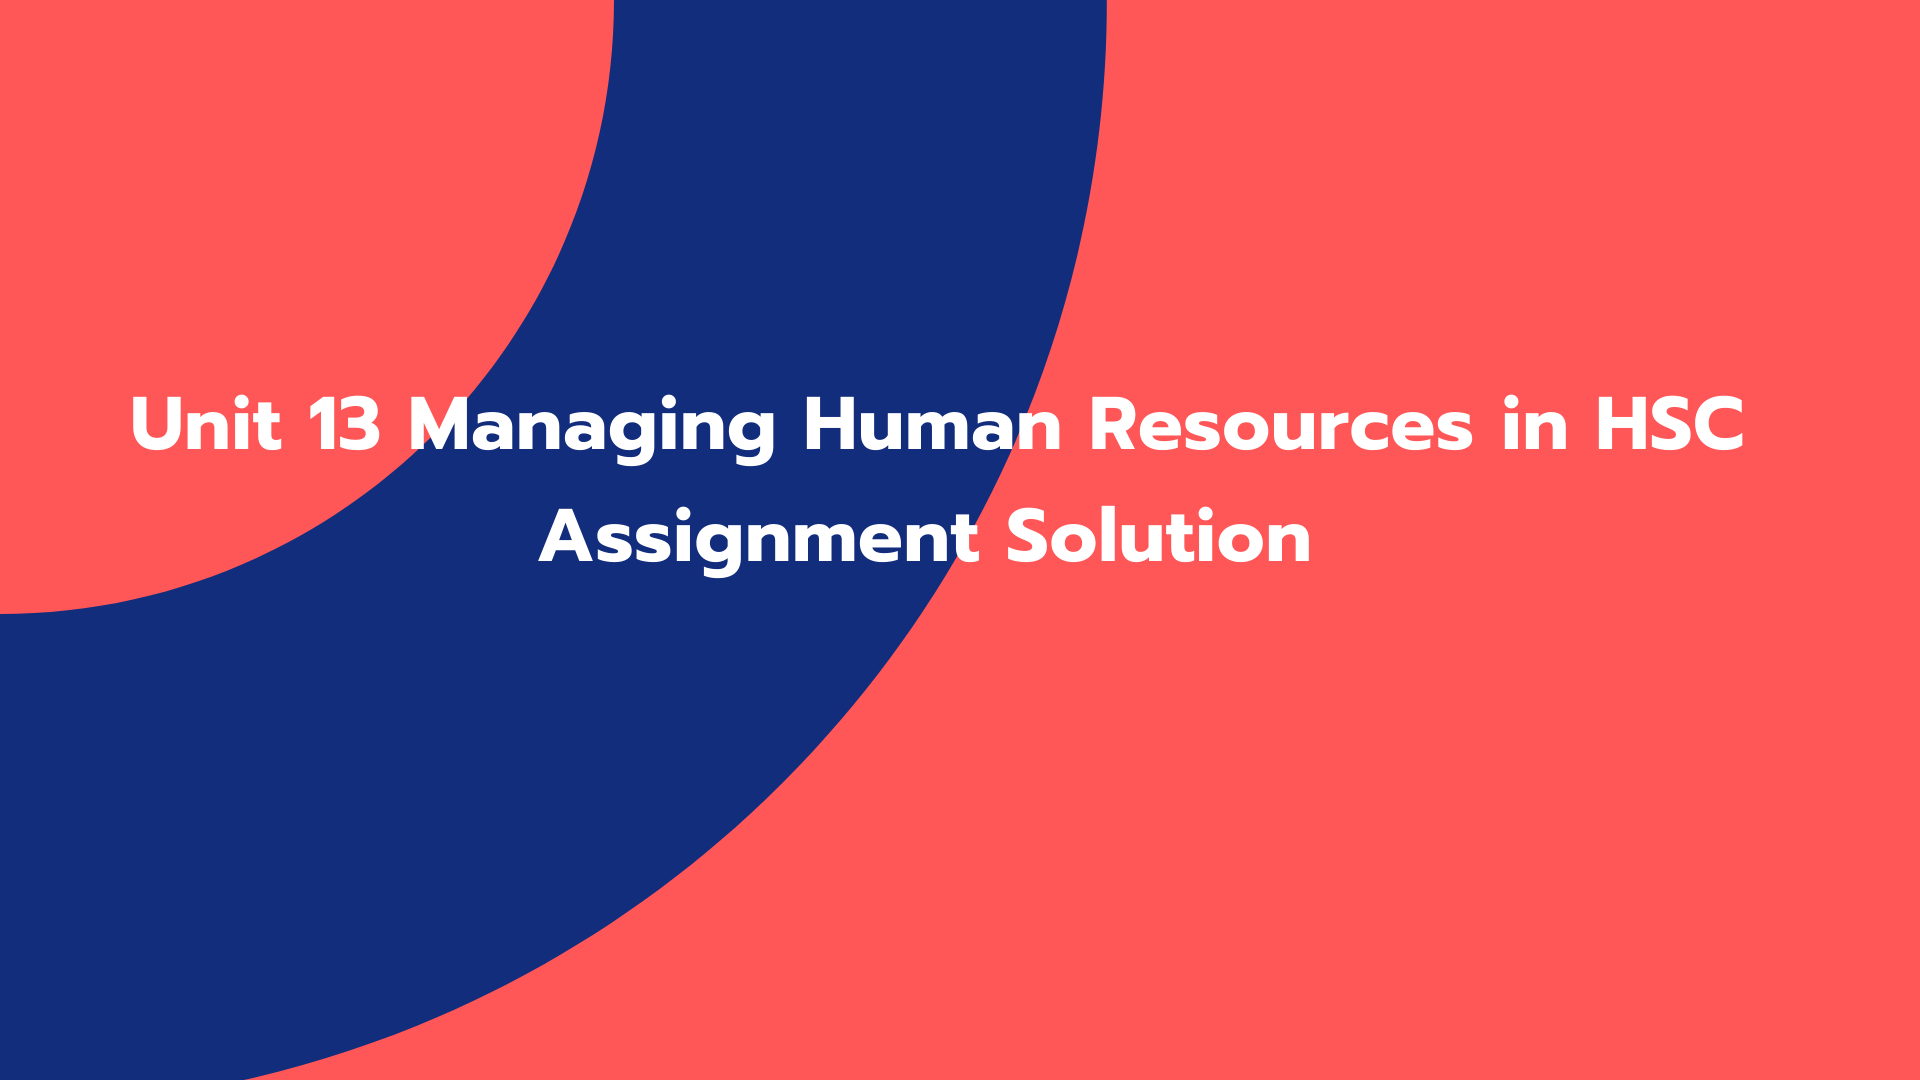 Unit 13 Managing Human Resources in HSC Assignment